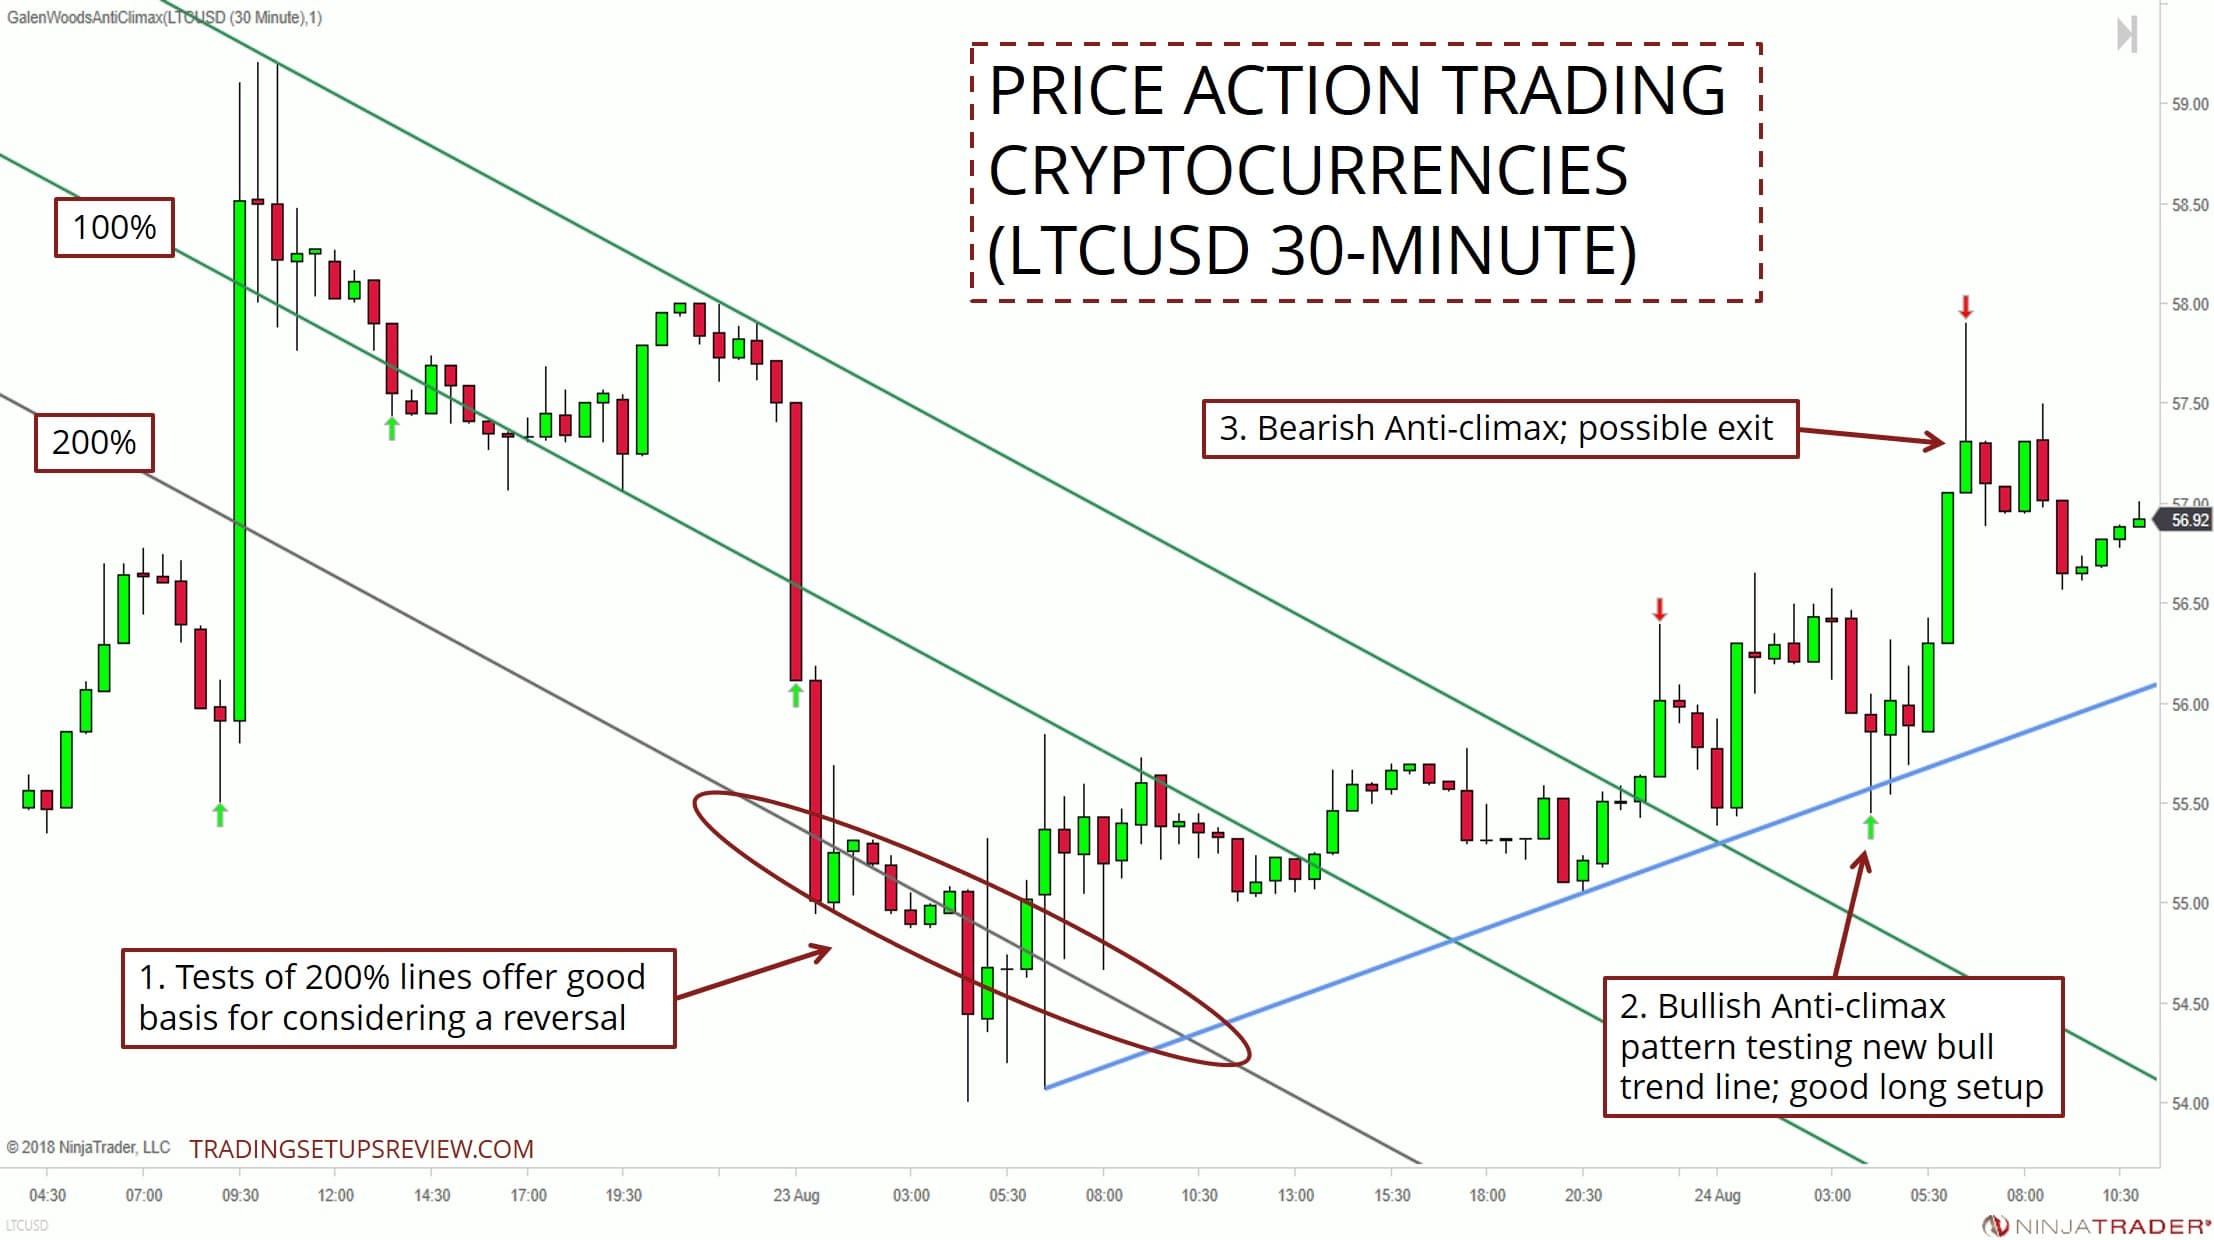 How To Trade Cryptocurrencies With Price Action